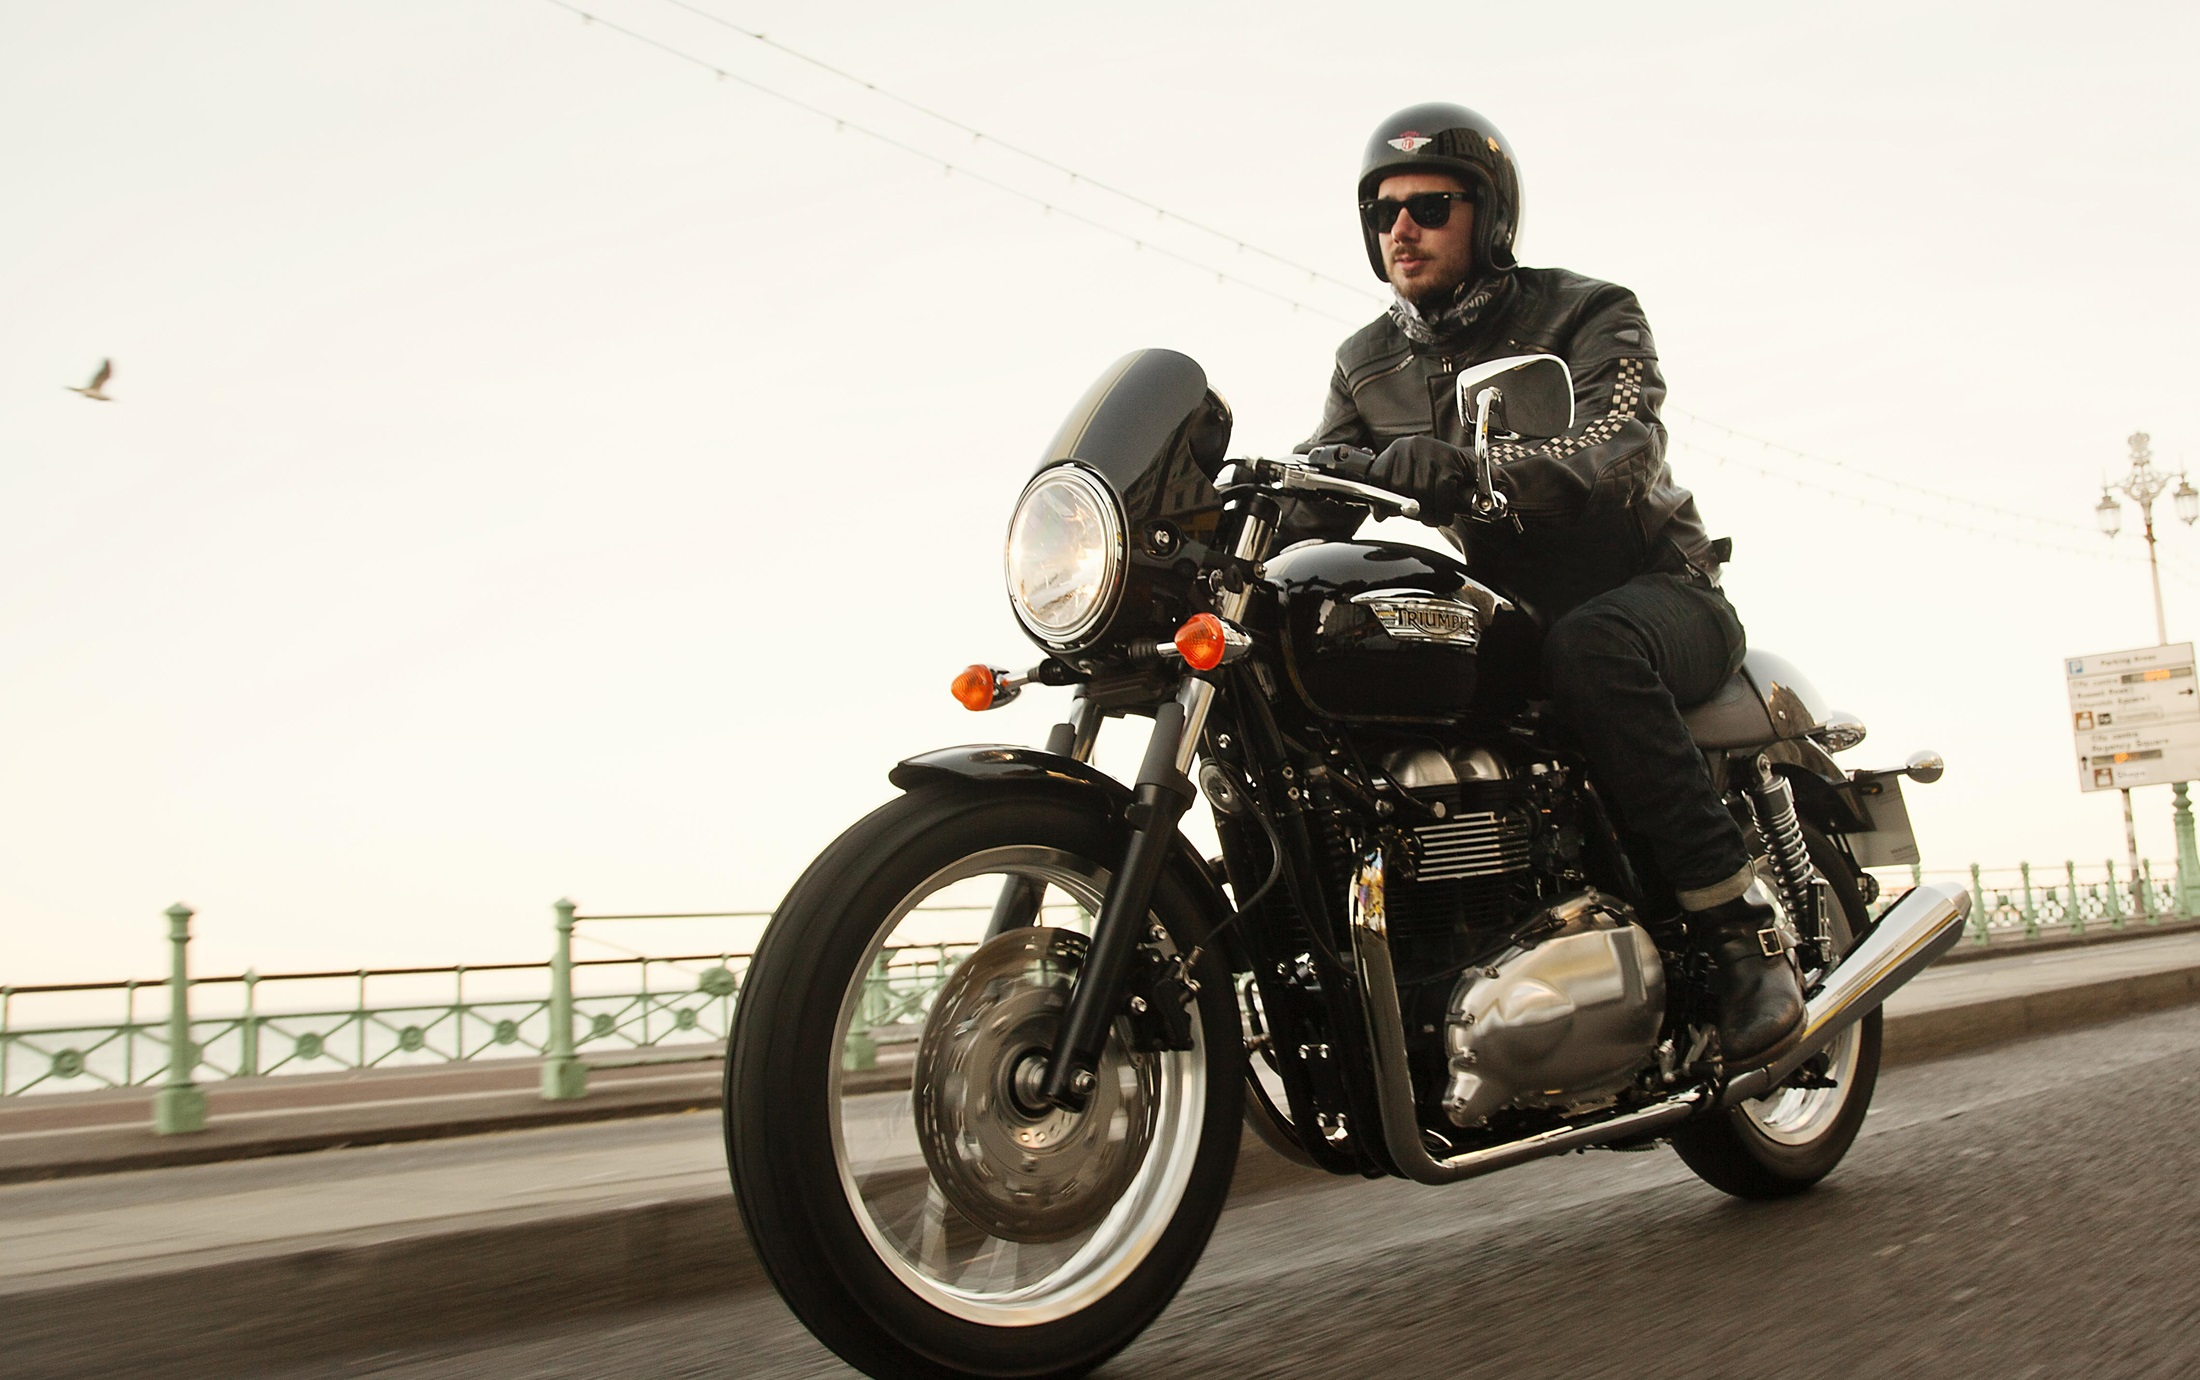 Triumph Motorcycles Contemplating For 1400 Units In 2017